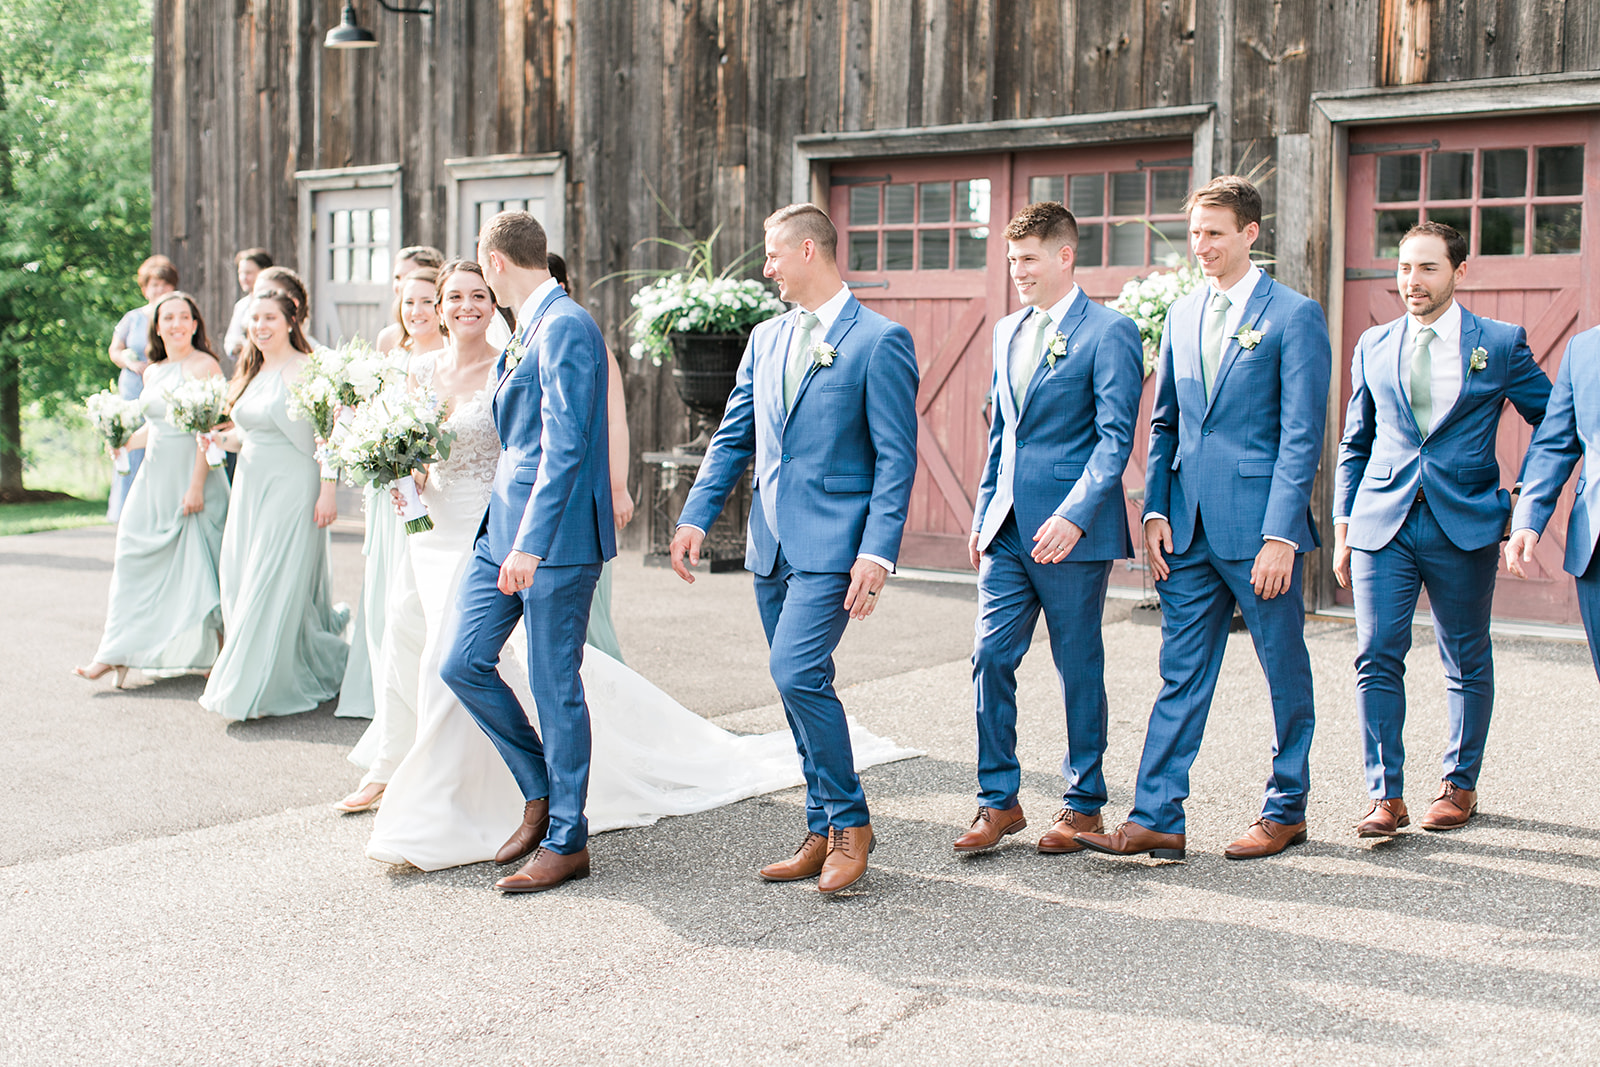 Wedding Party photo with rustic barn in background at Lion Rock Farm wedding